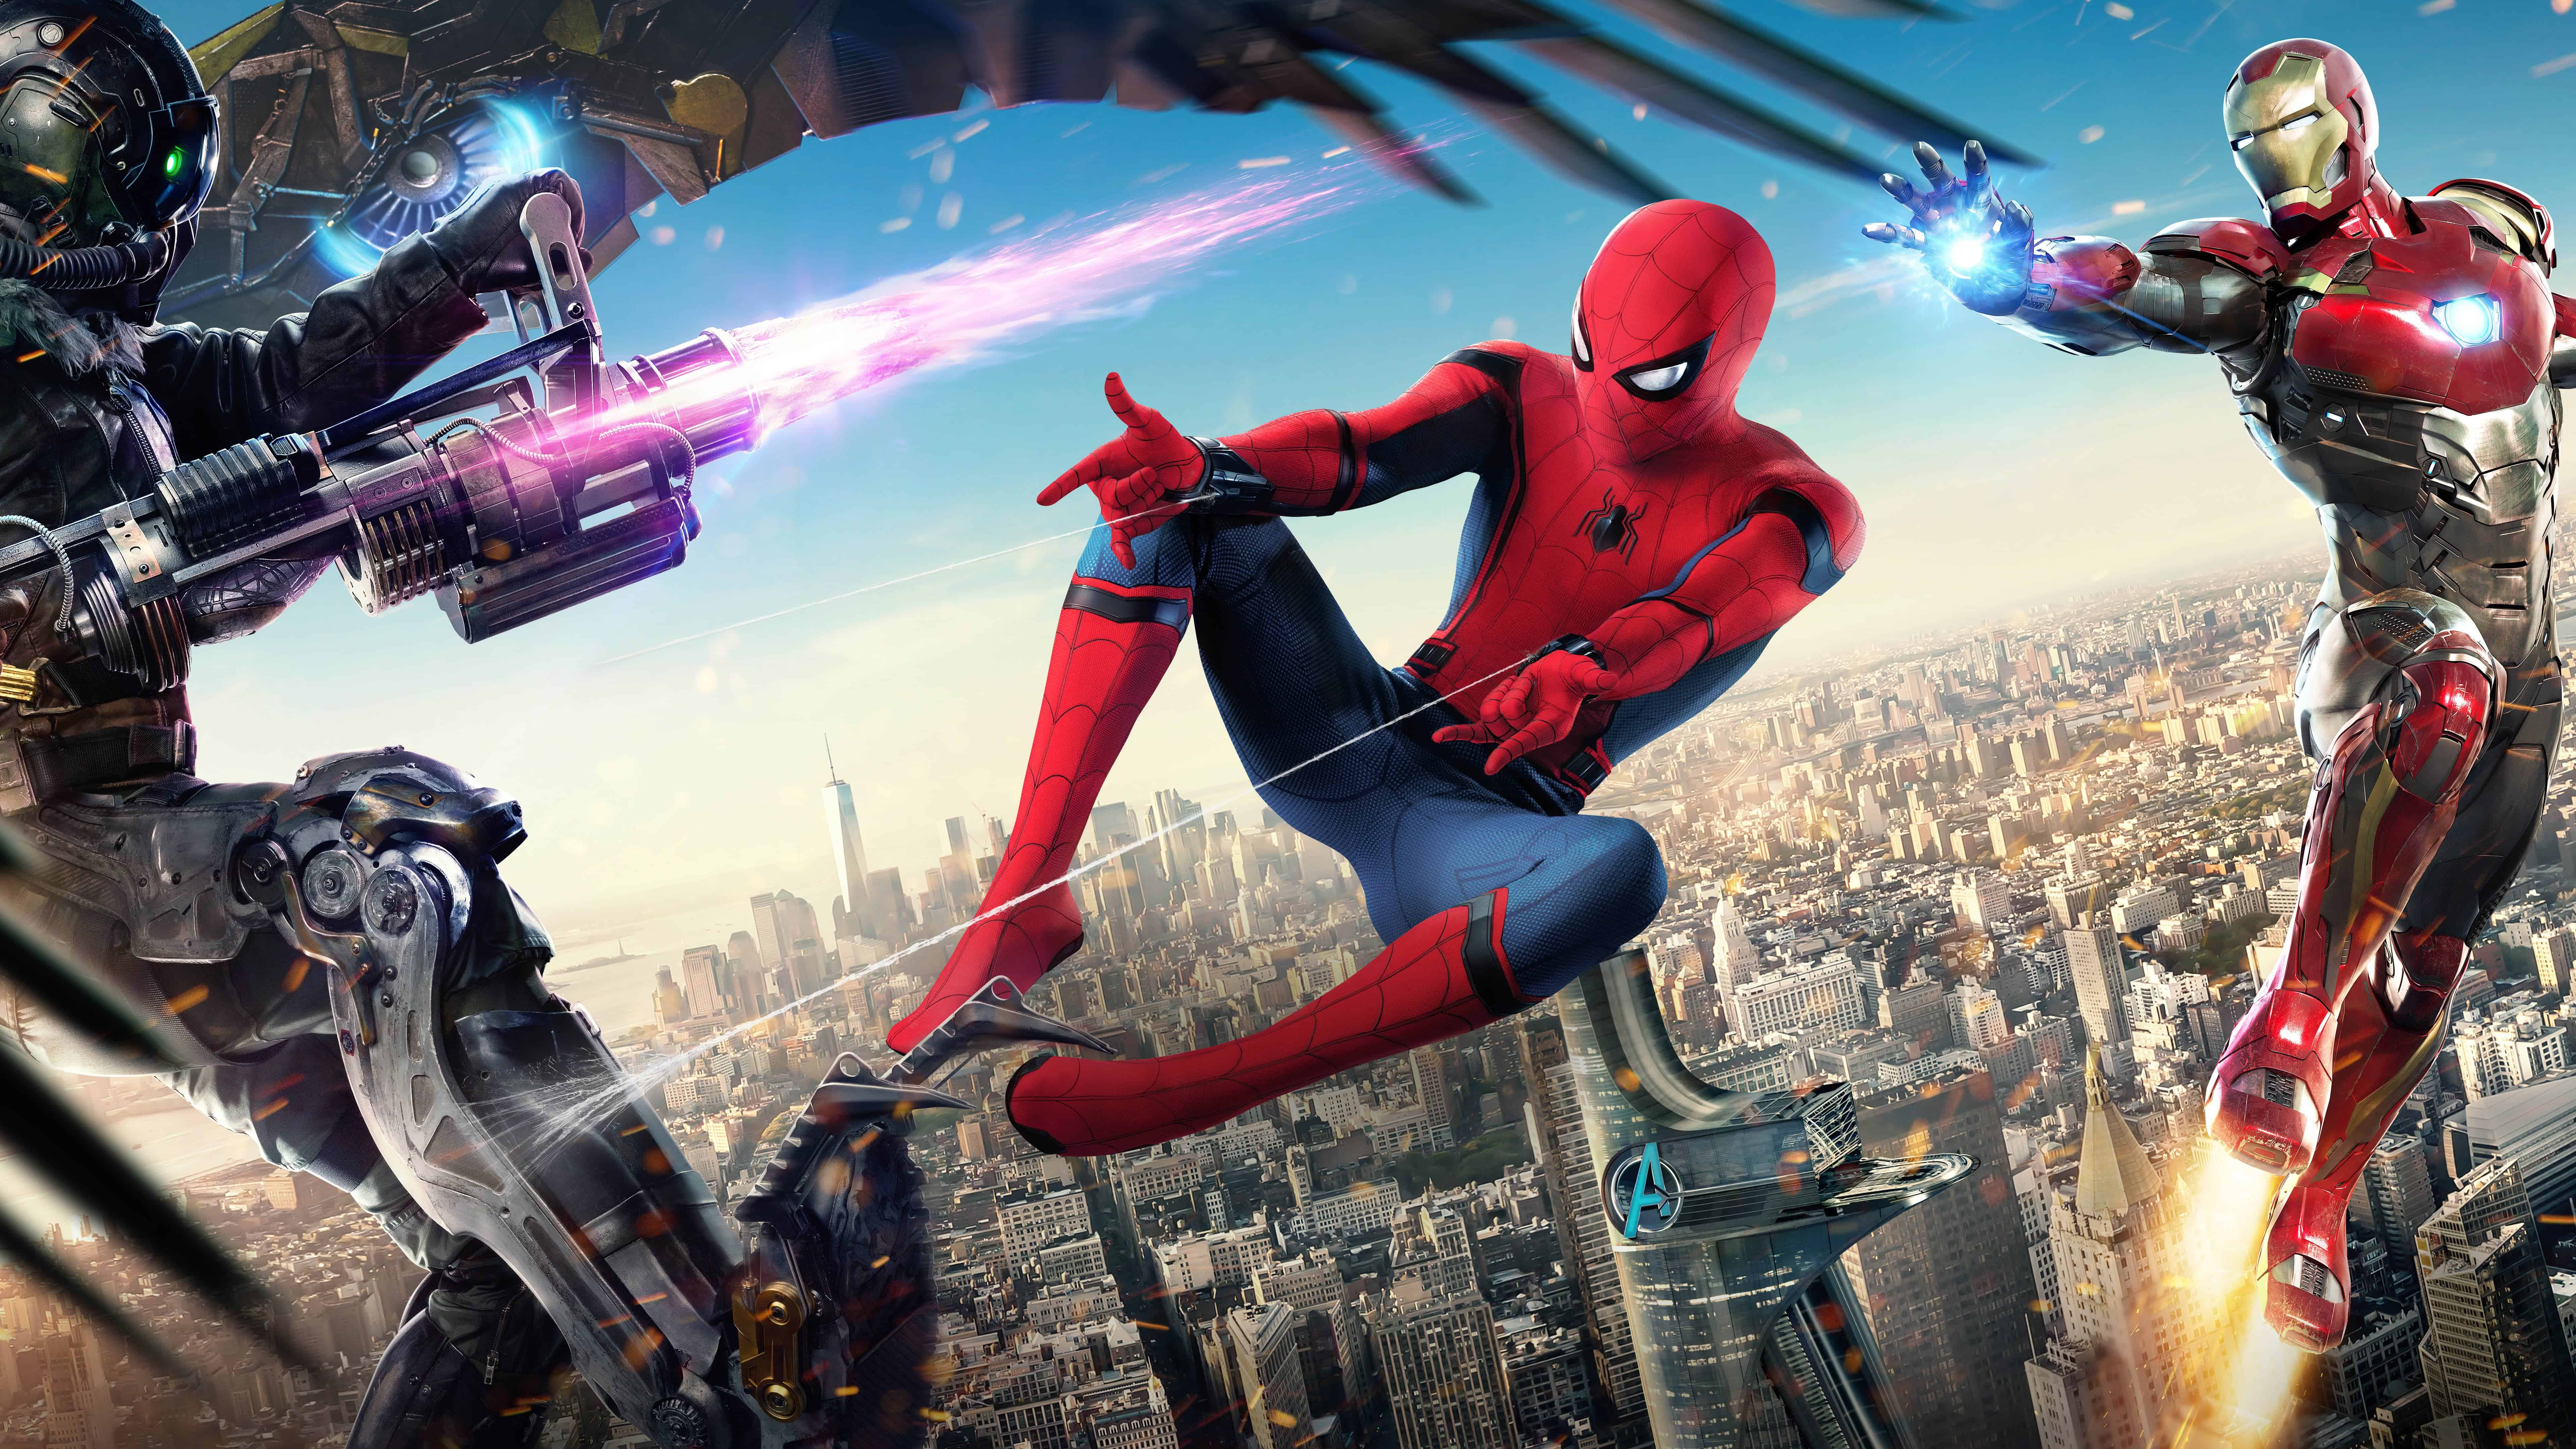 Keywords Spiderman DOWNLOAD IMAGE